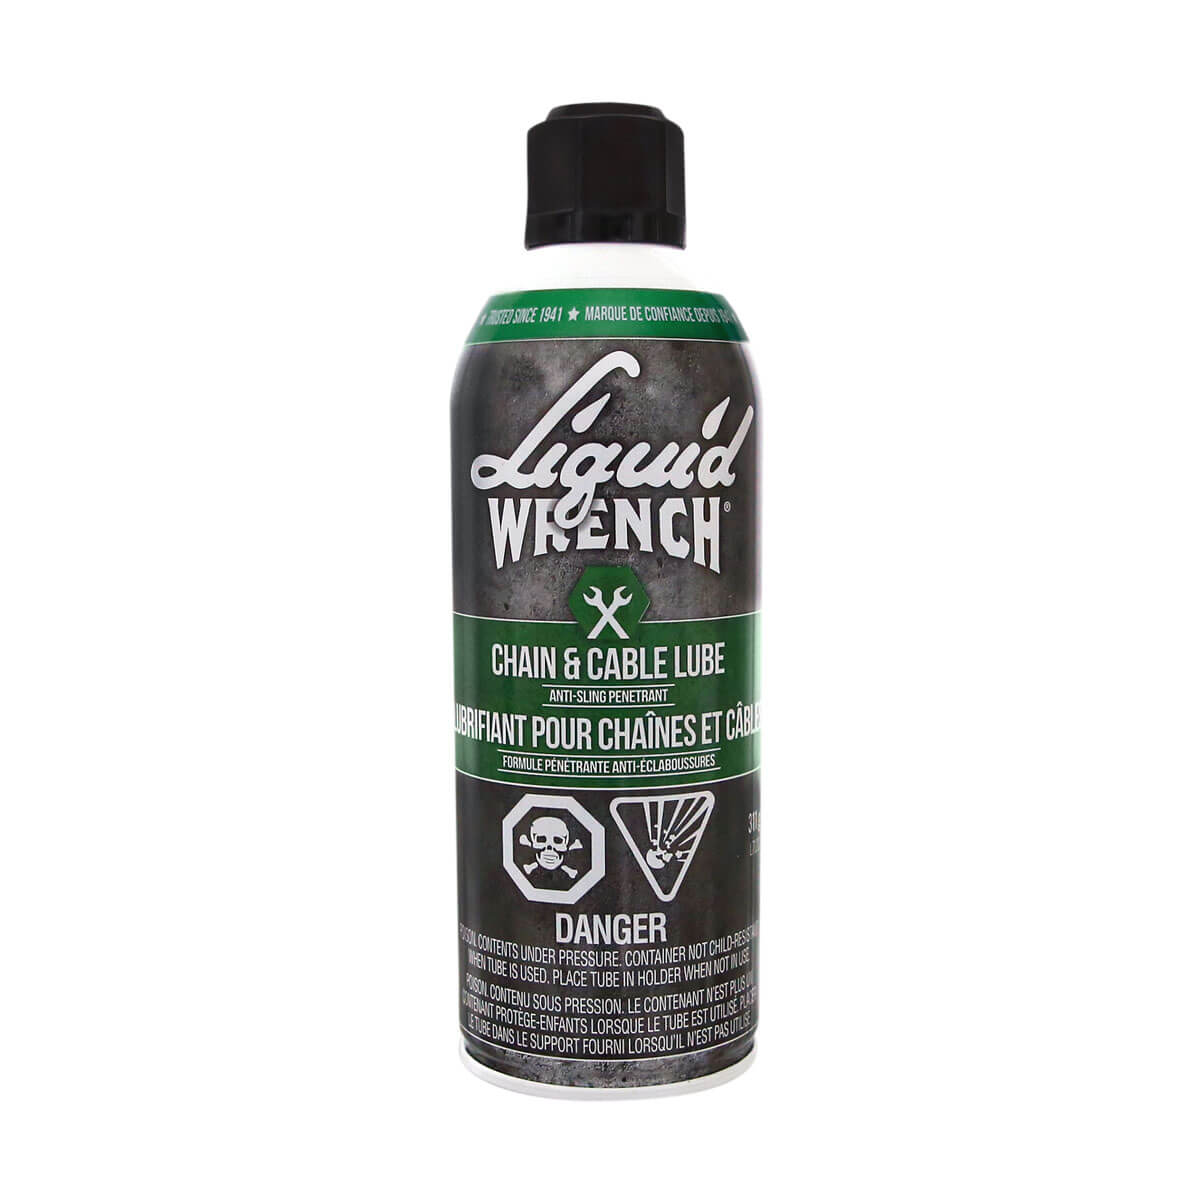 Chain & Cable Lube - 311 g